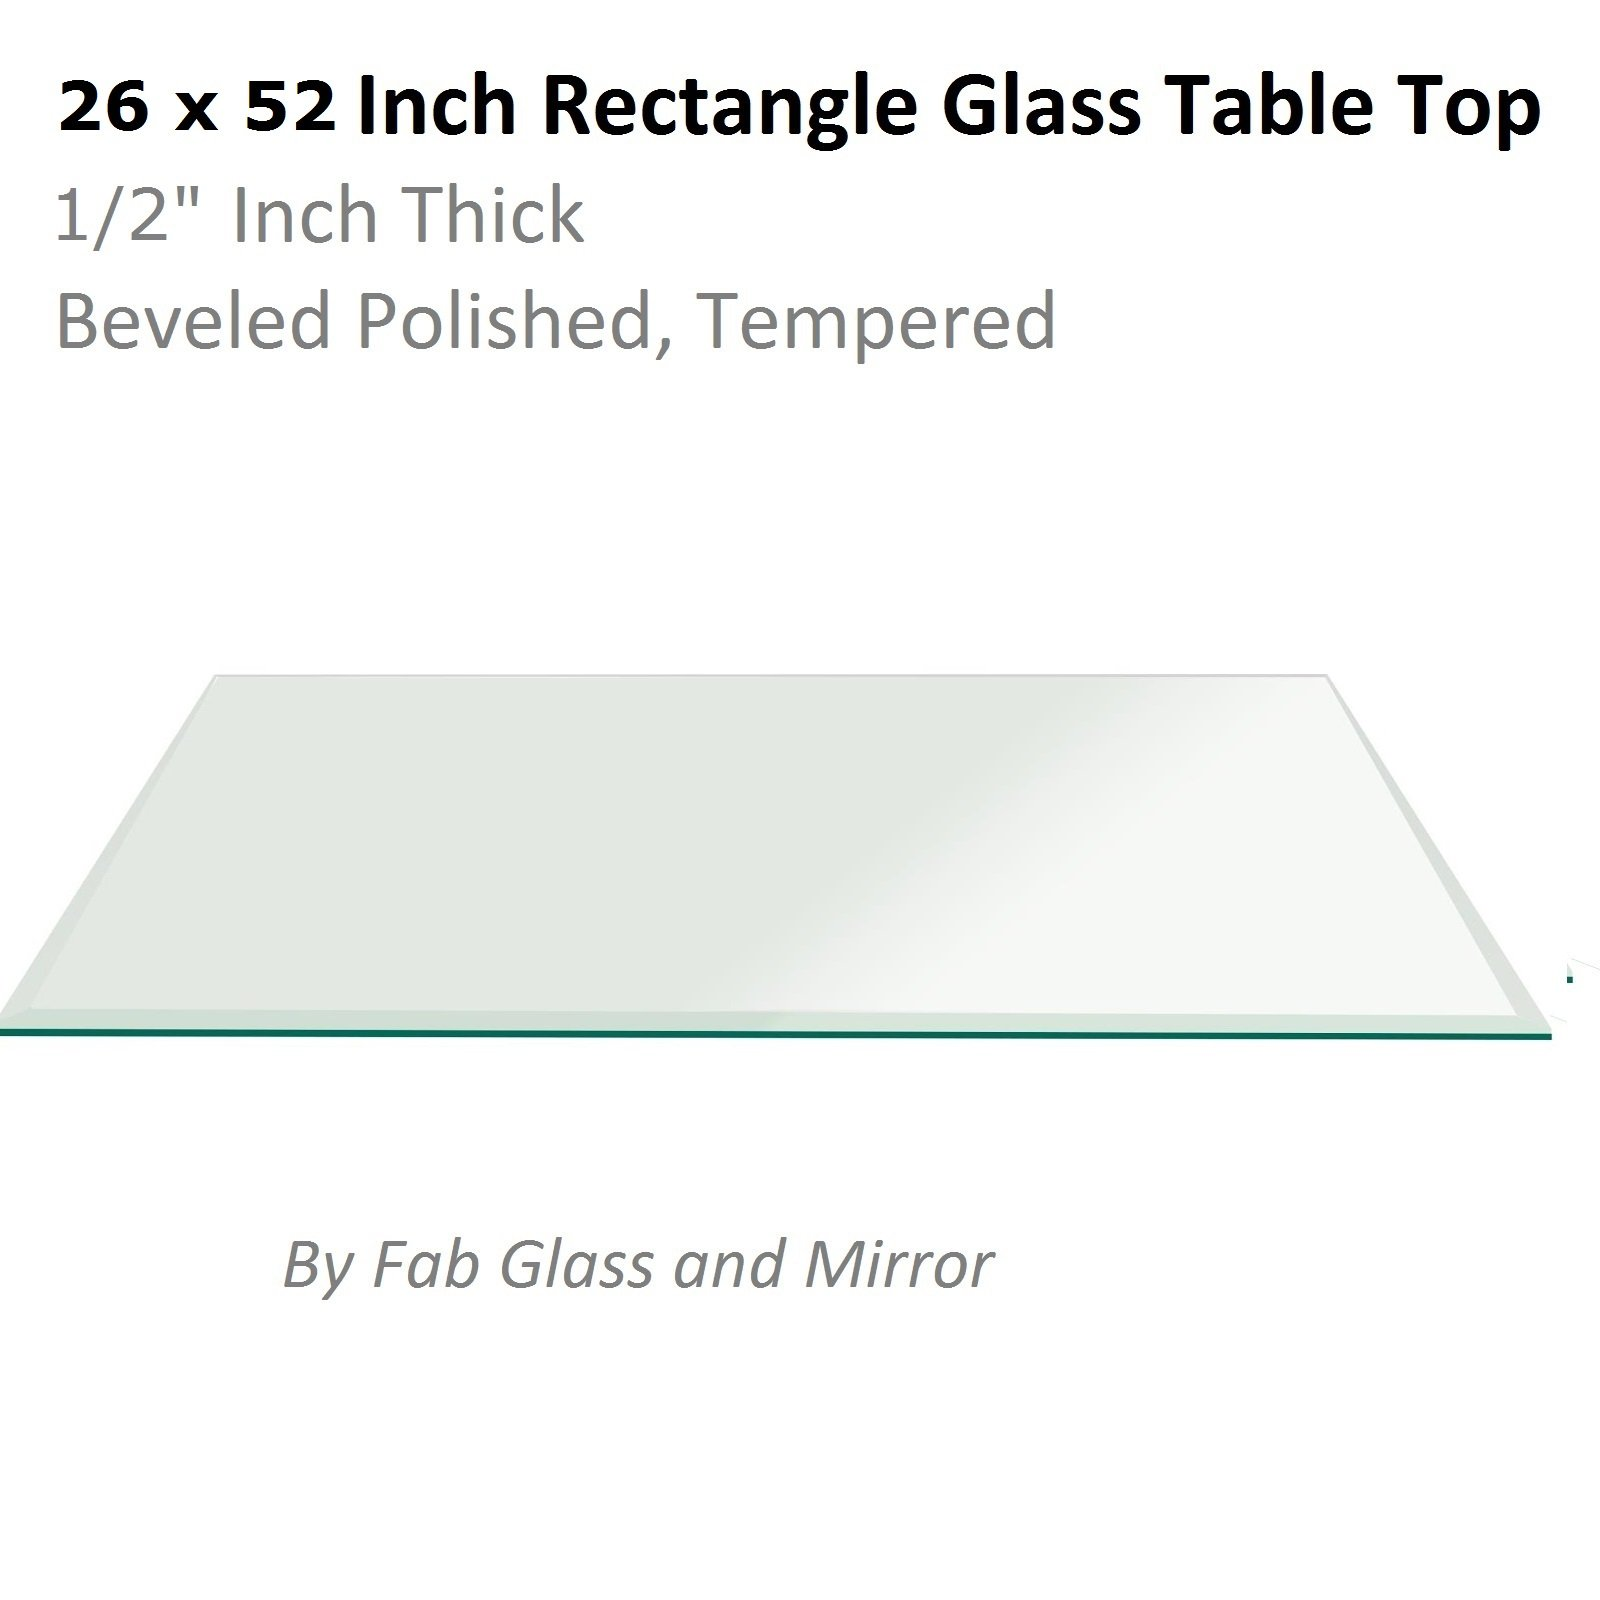 Fab Glass and Mirror T-26x52REC12THBETE 26'' x 52'' Rectangle 1/2'' Inch Thick Tempered Beveled Edge Polish Radius Corners Glass Table Top Clear